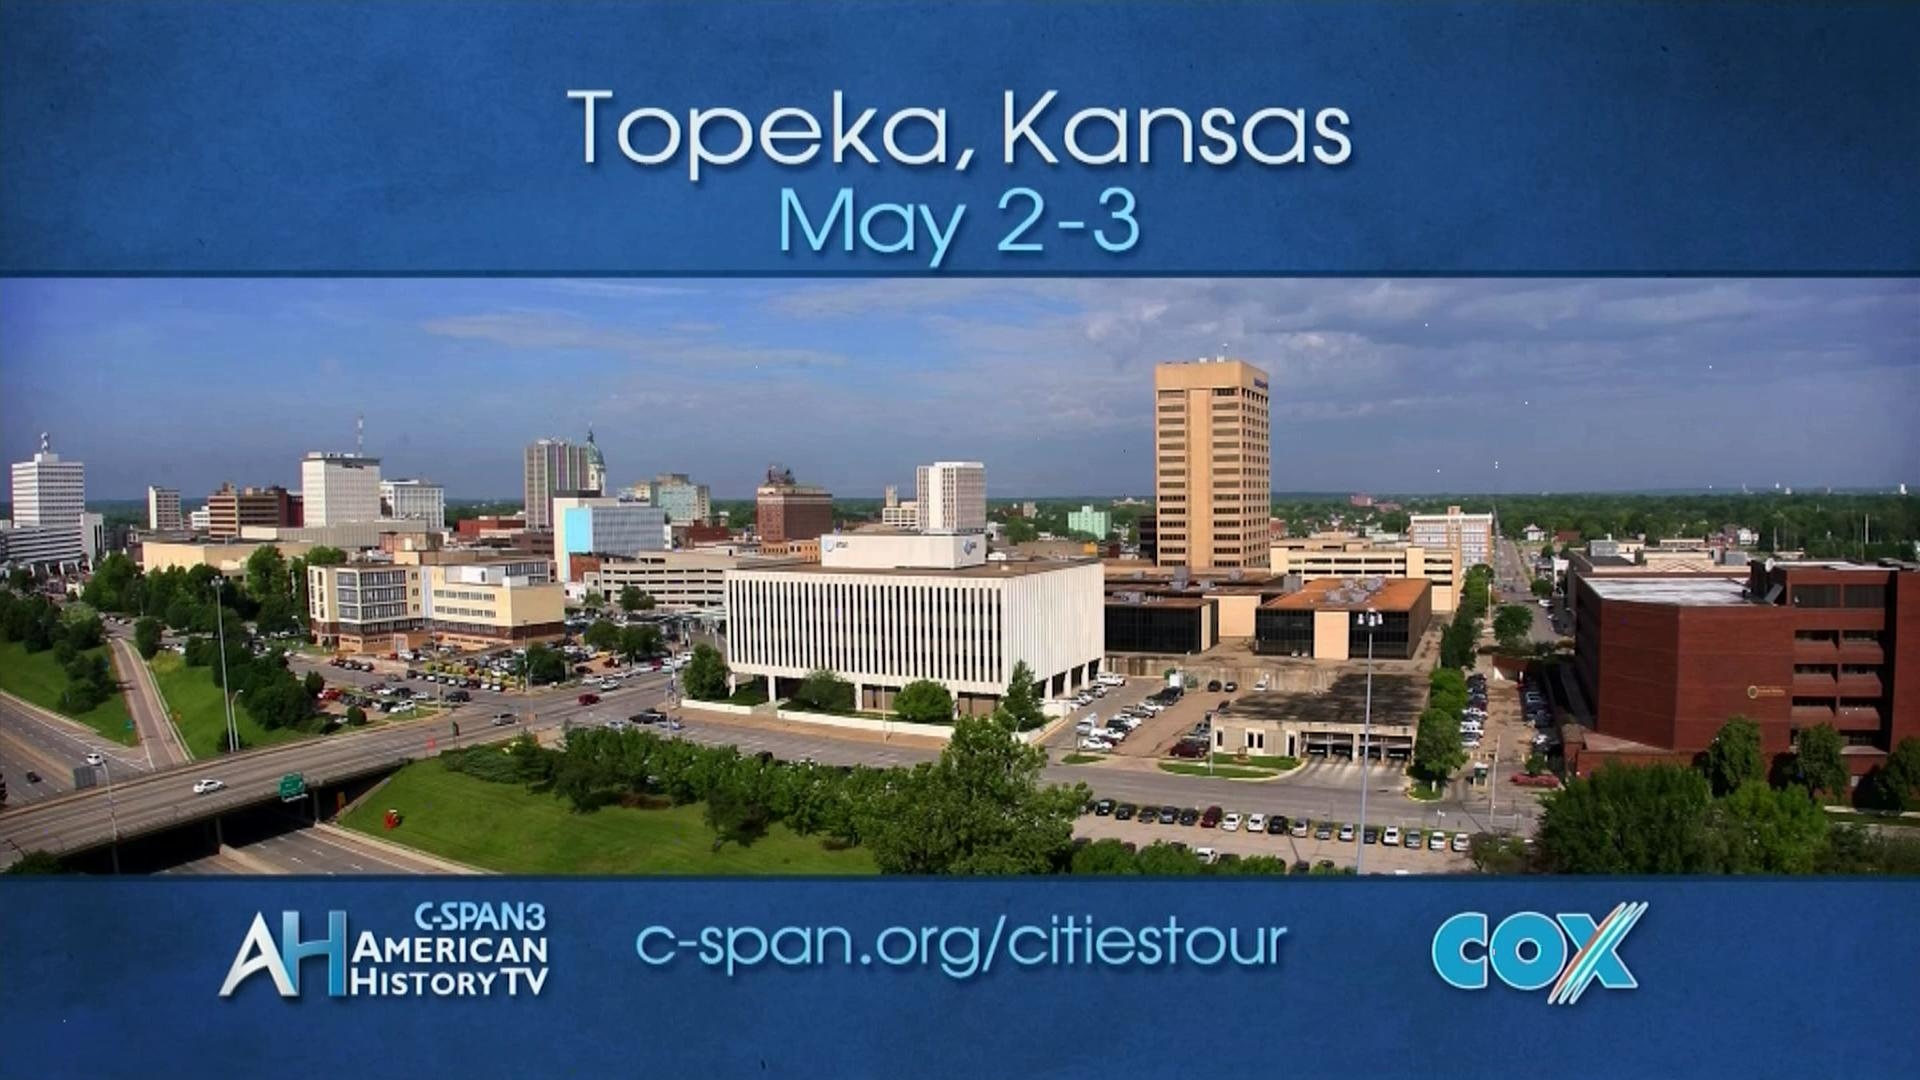 What is topeka kansas known for